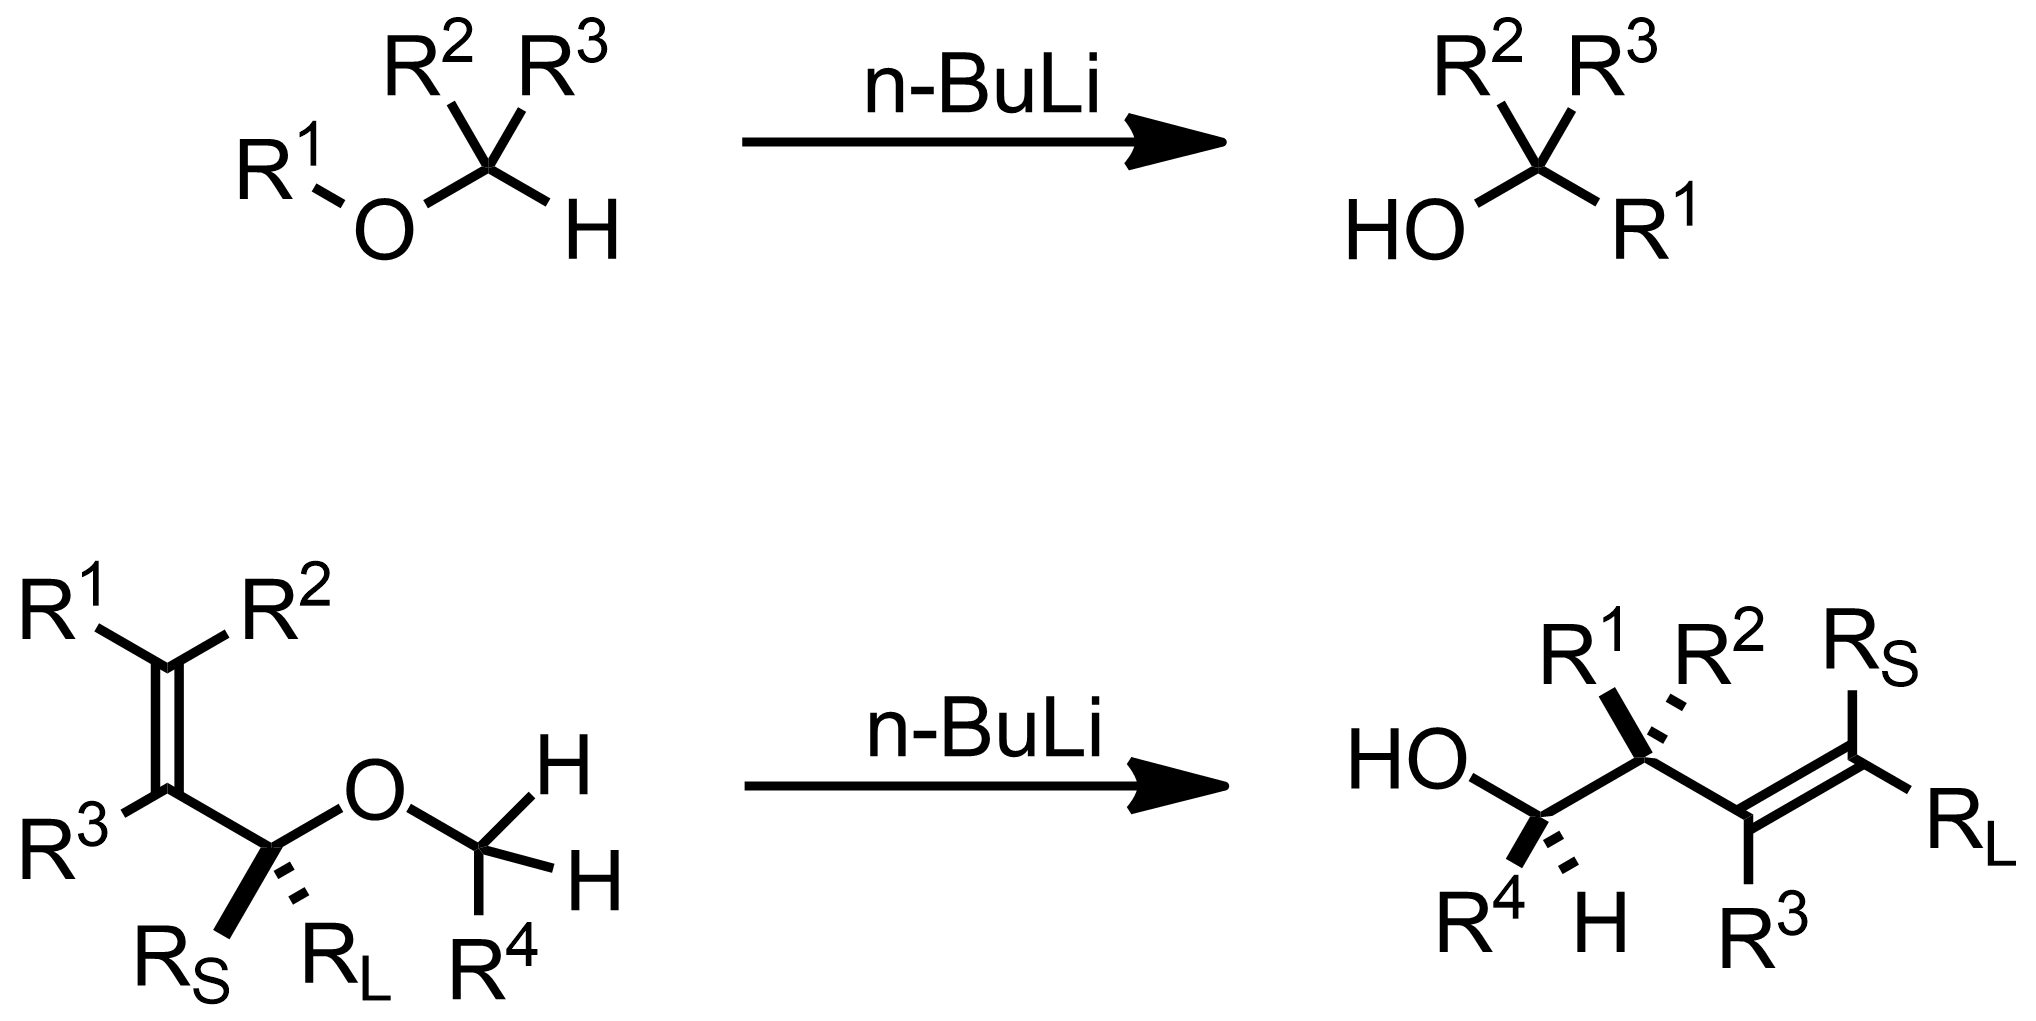 Schematic representation of the Wittig Rearrangement-[2,3].